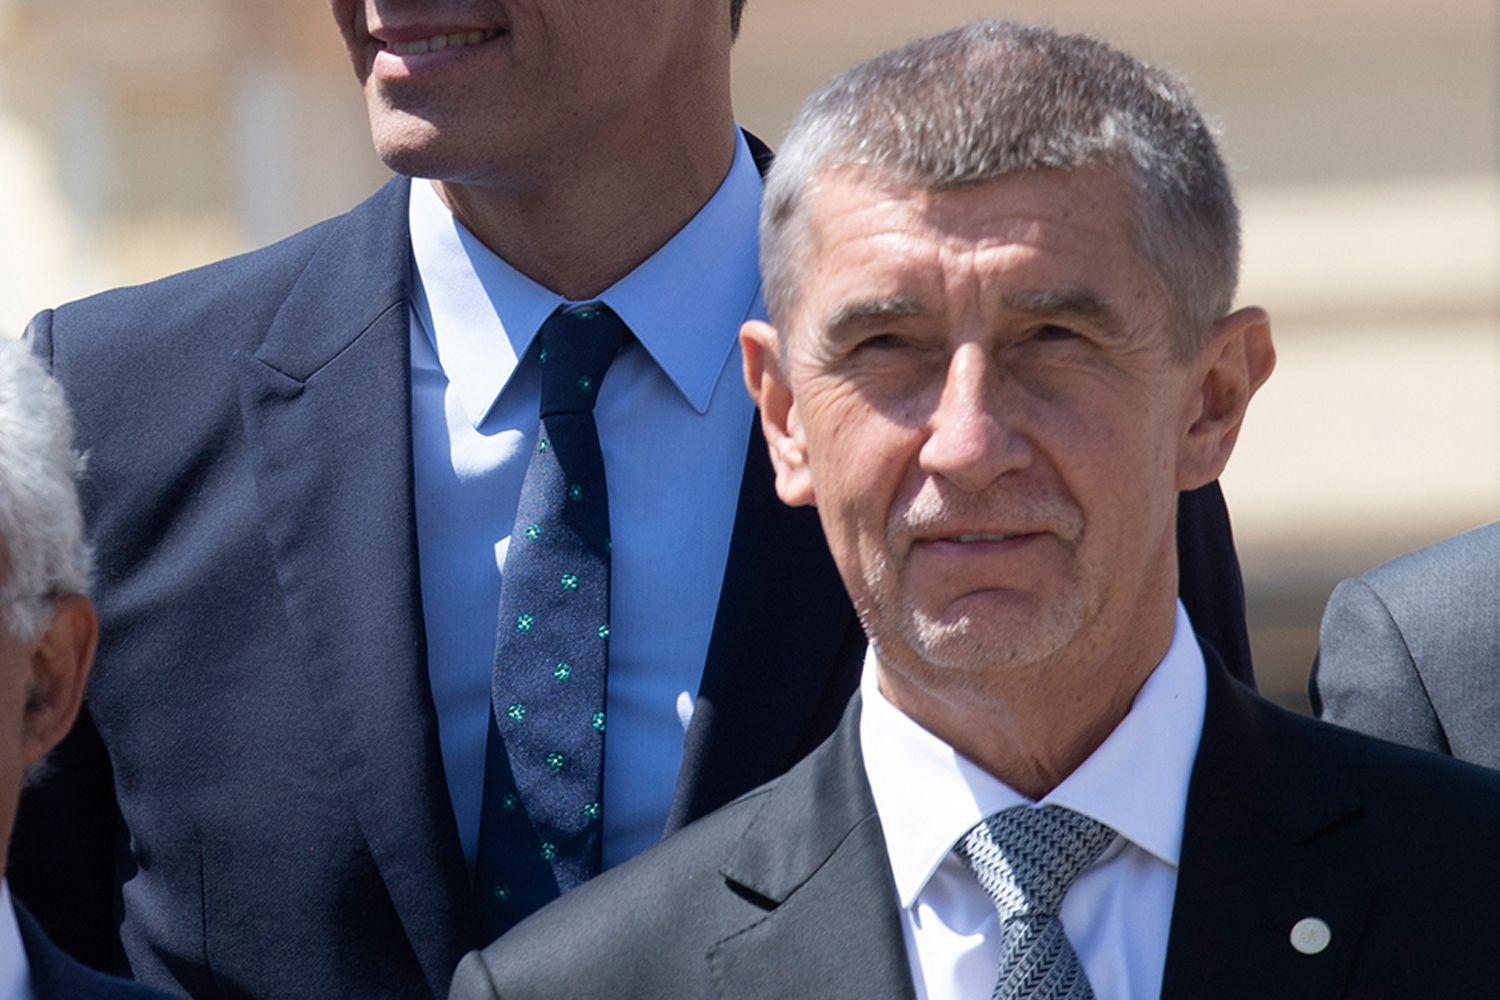 Climate change must be approached realistically, says Czech Prime Minister Andrej Babiš